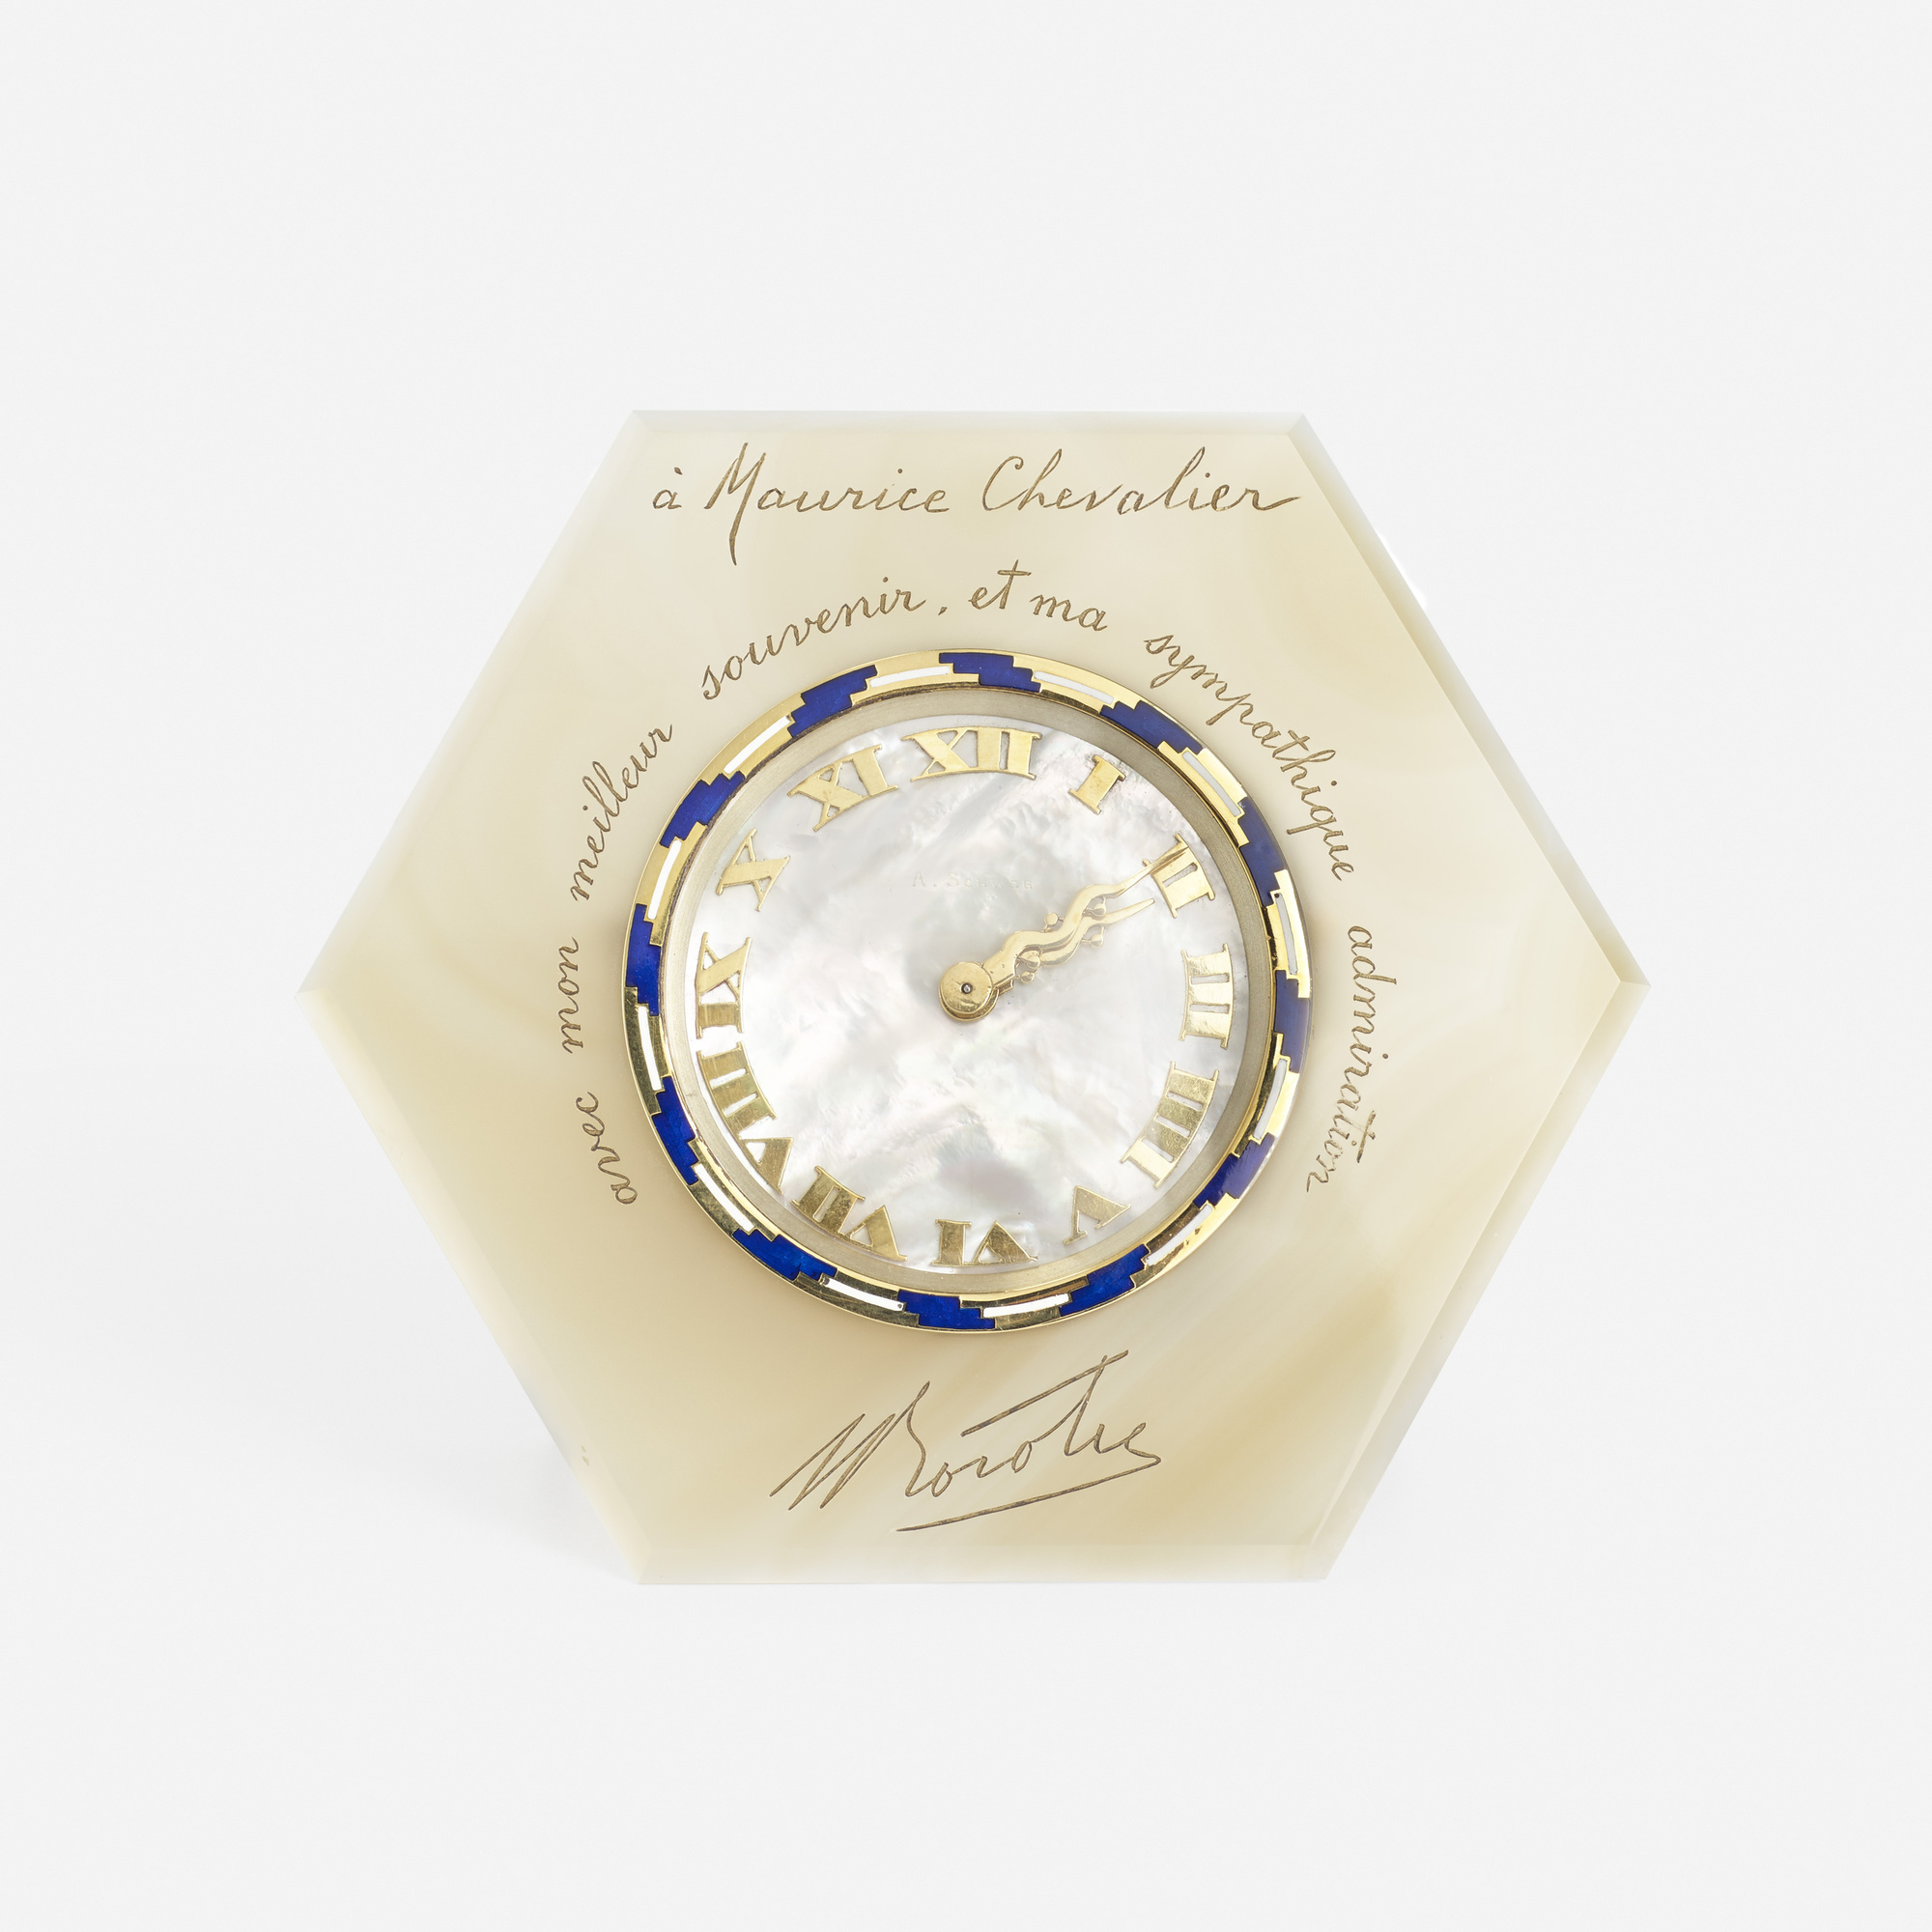 224: Art Deco / A gold, agate, mother-of-pearl and enamel table clock for Maurice Chevalier (1 of 1)